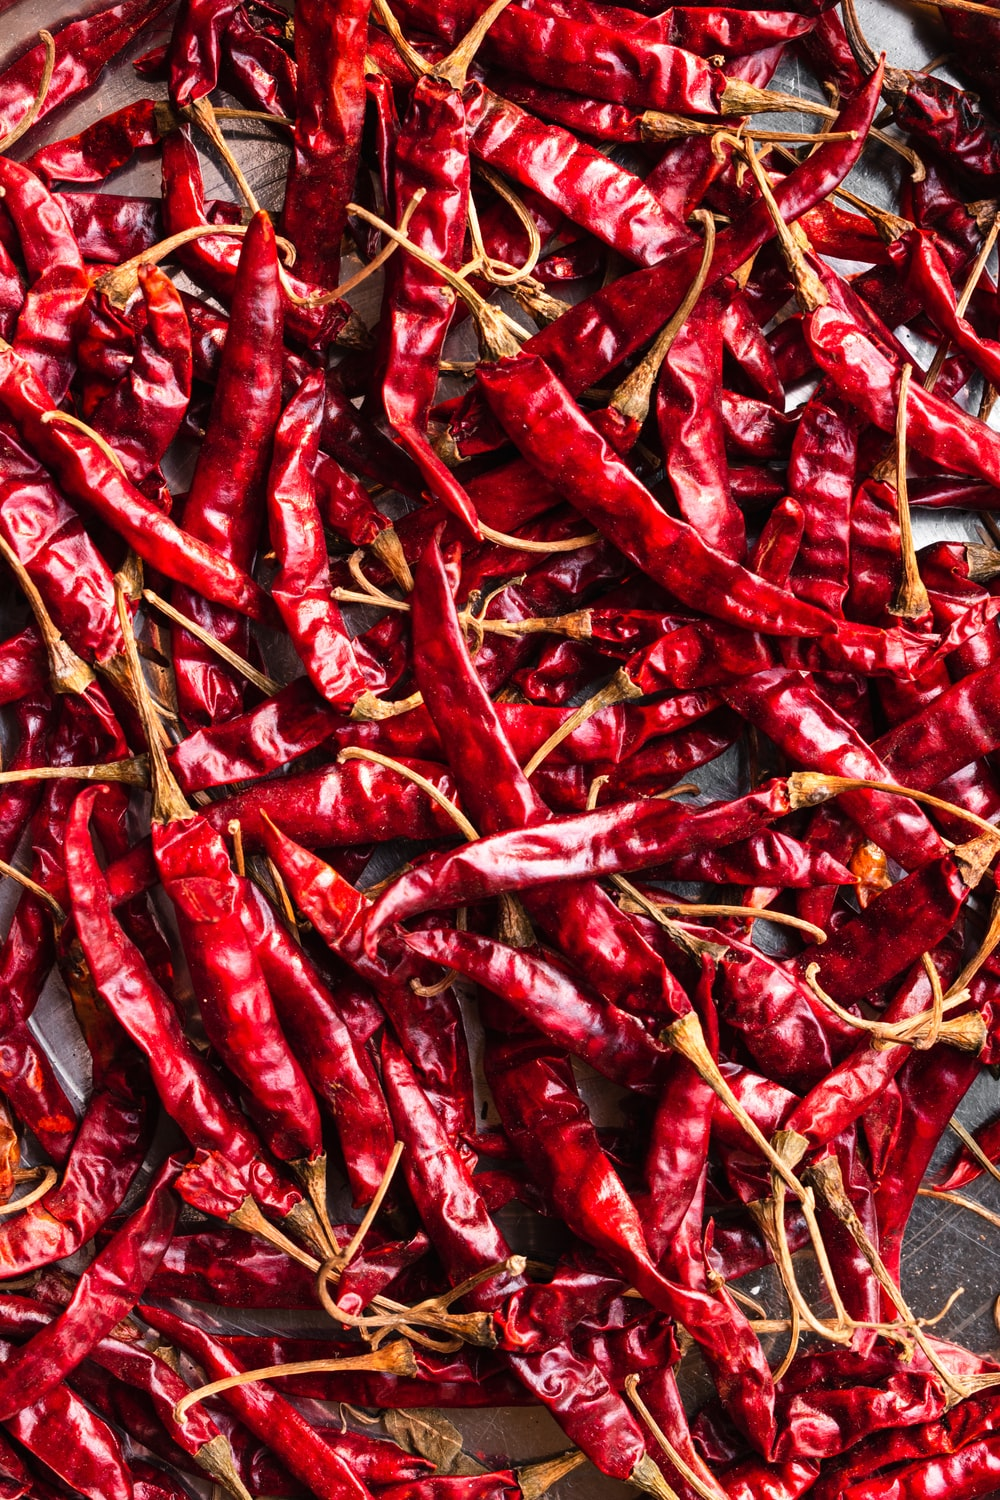 red chili lot on ground